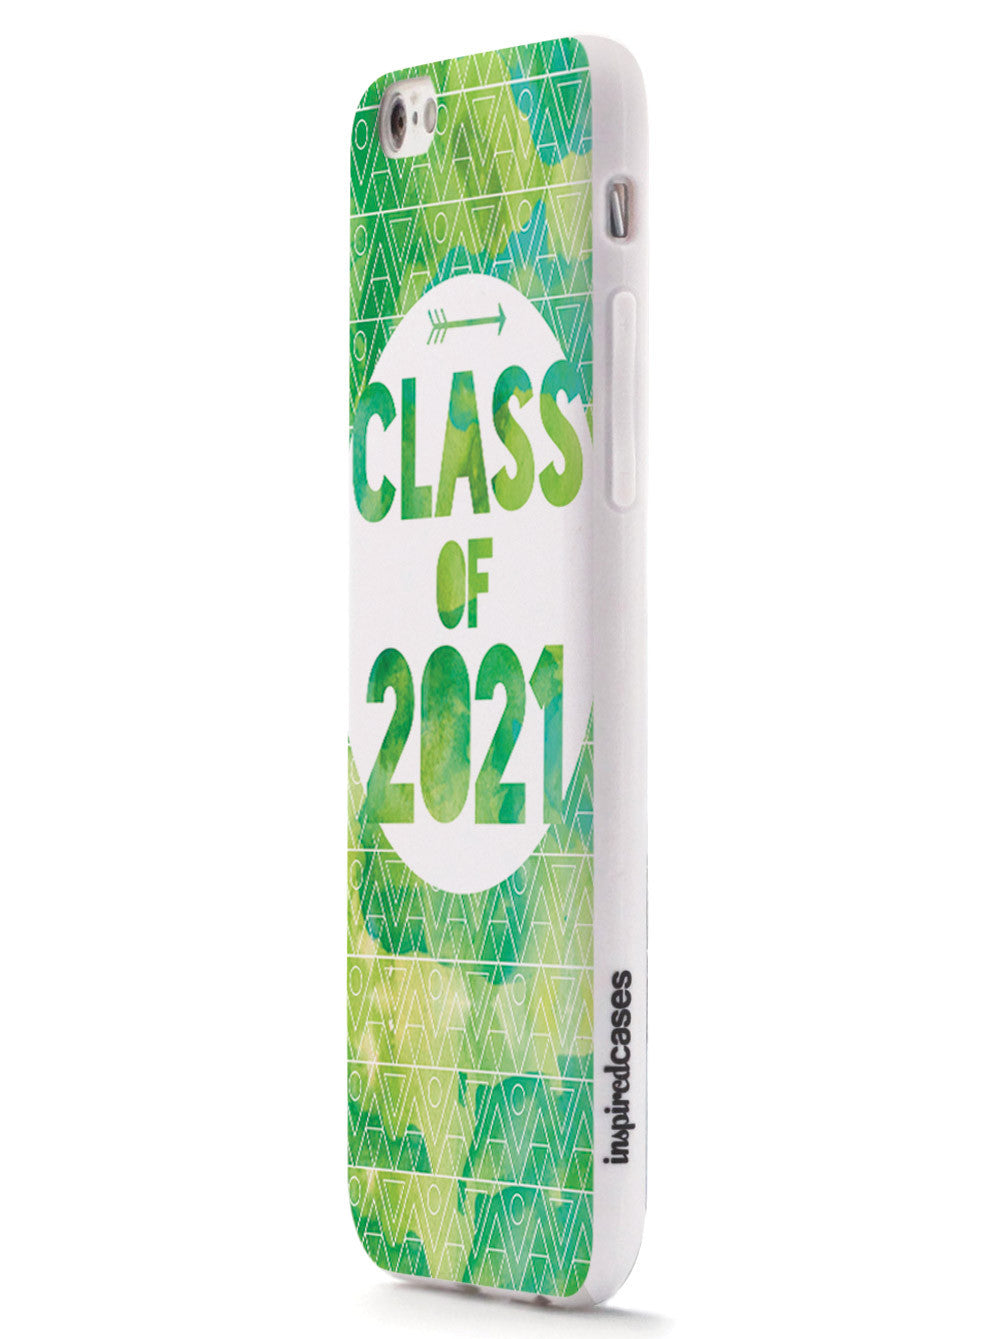 Class of 2021 - Green Watercolor Case